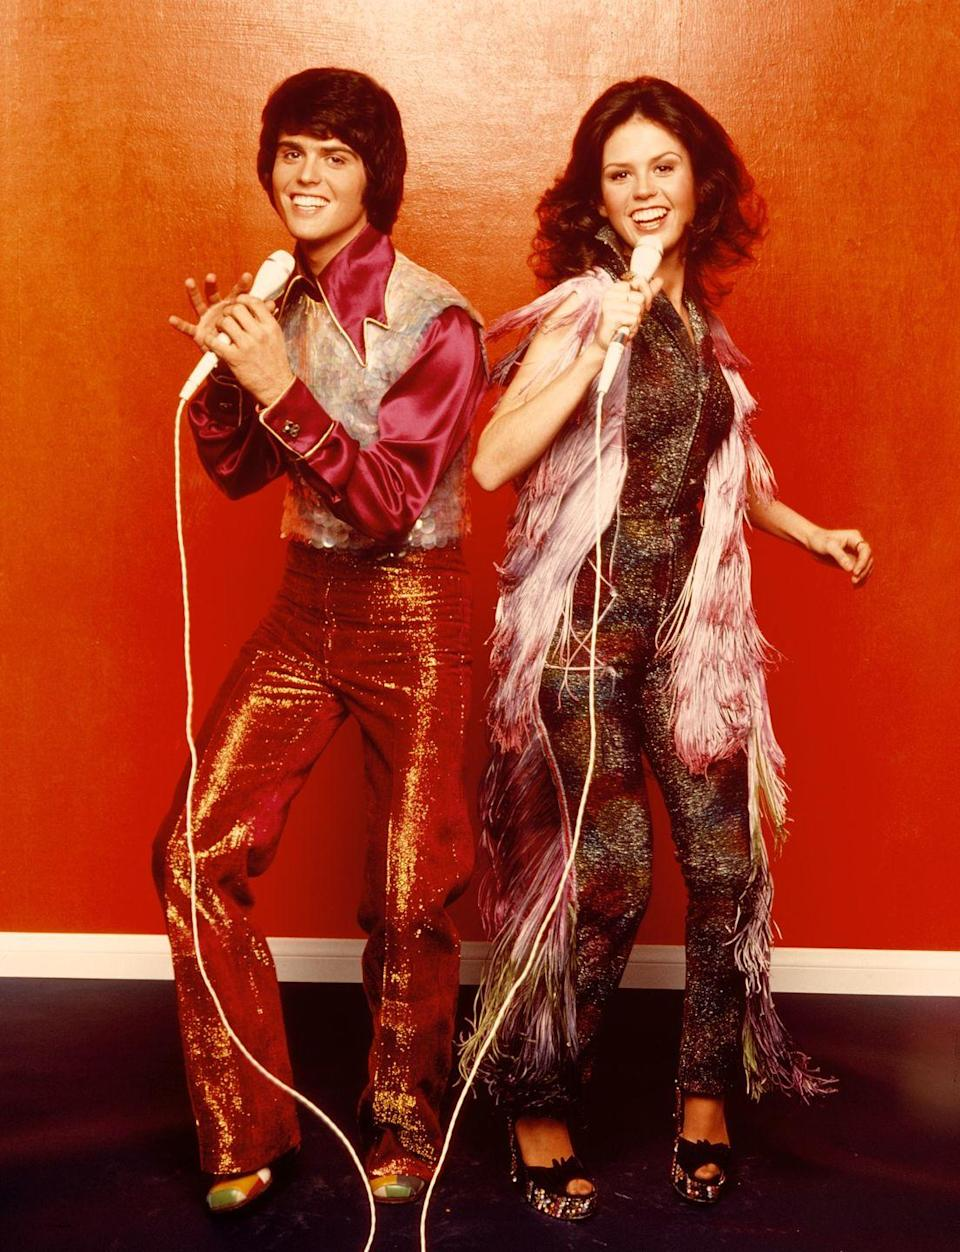 <p>Lamé? Check. Silky polyester shirt? Check. Fringe? Check. Platforms? Check. Looks like Donny and Marie Osmond are all set to boogie. </p>